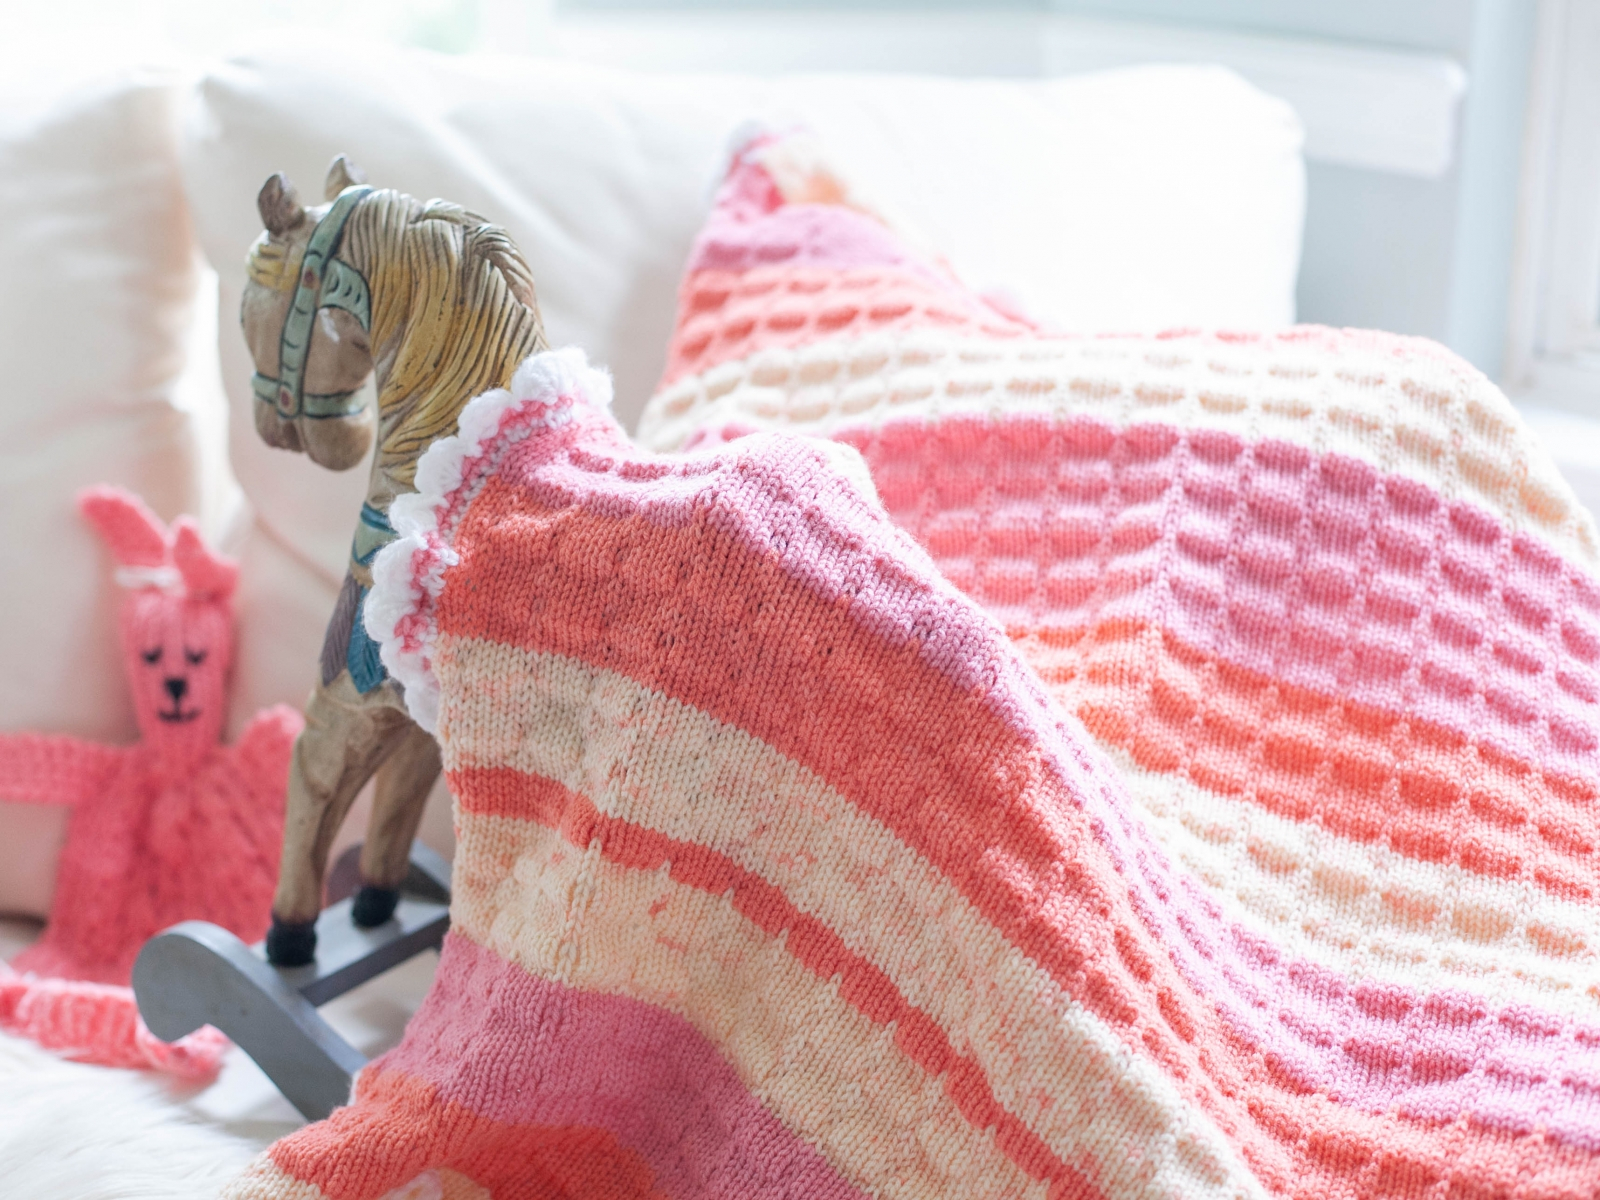 Knitting Pattern For Baby Blankets Loom Knit Ba Blanket With Crochet Edging Pattern Stroller Size Tuck Stitch Make For A Boy Or Girl Pdf Pattern Download